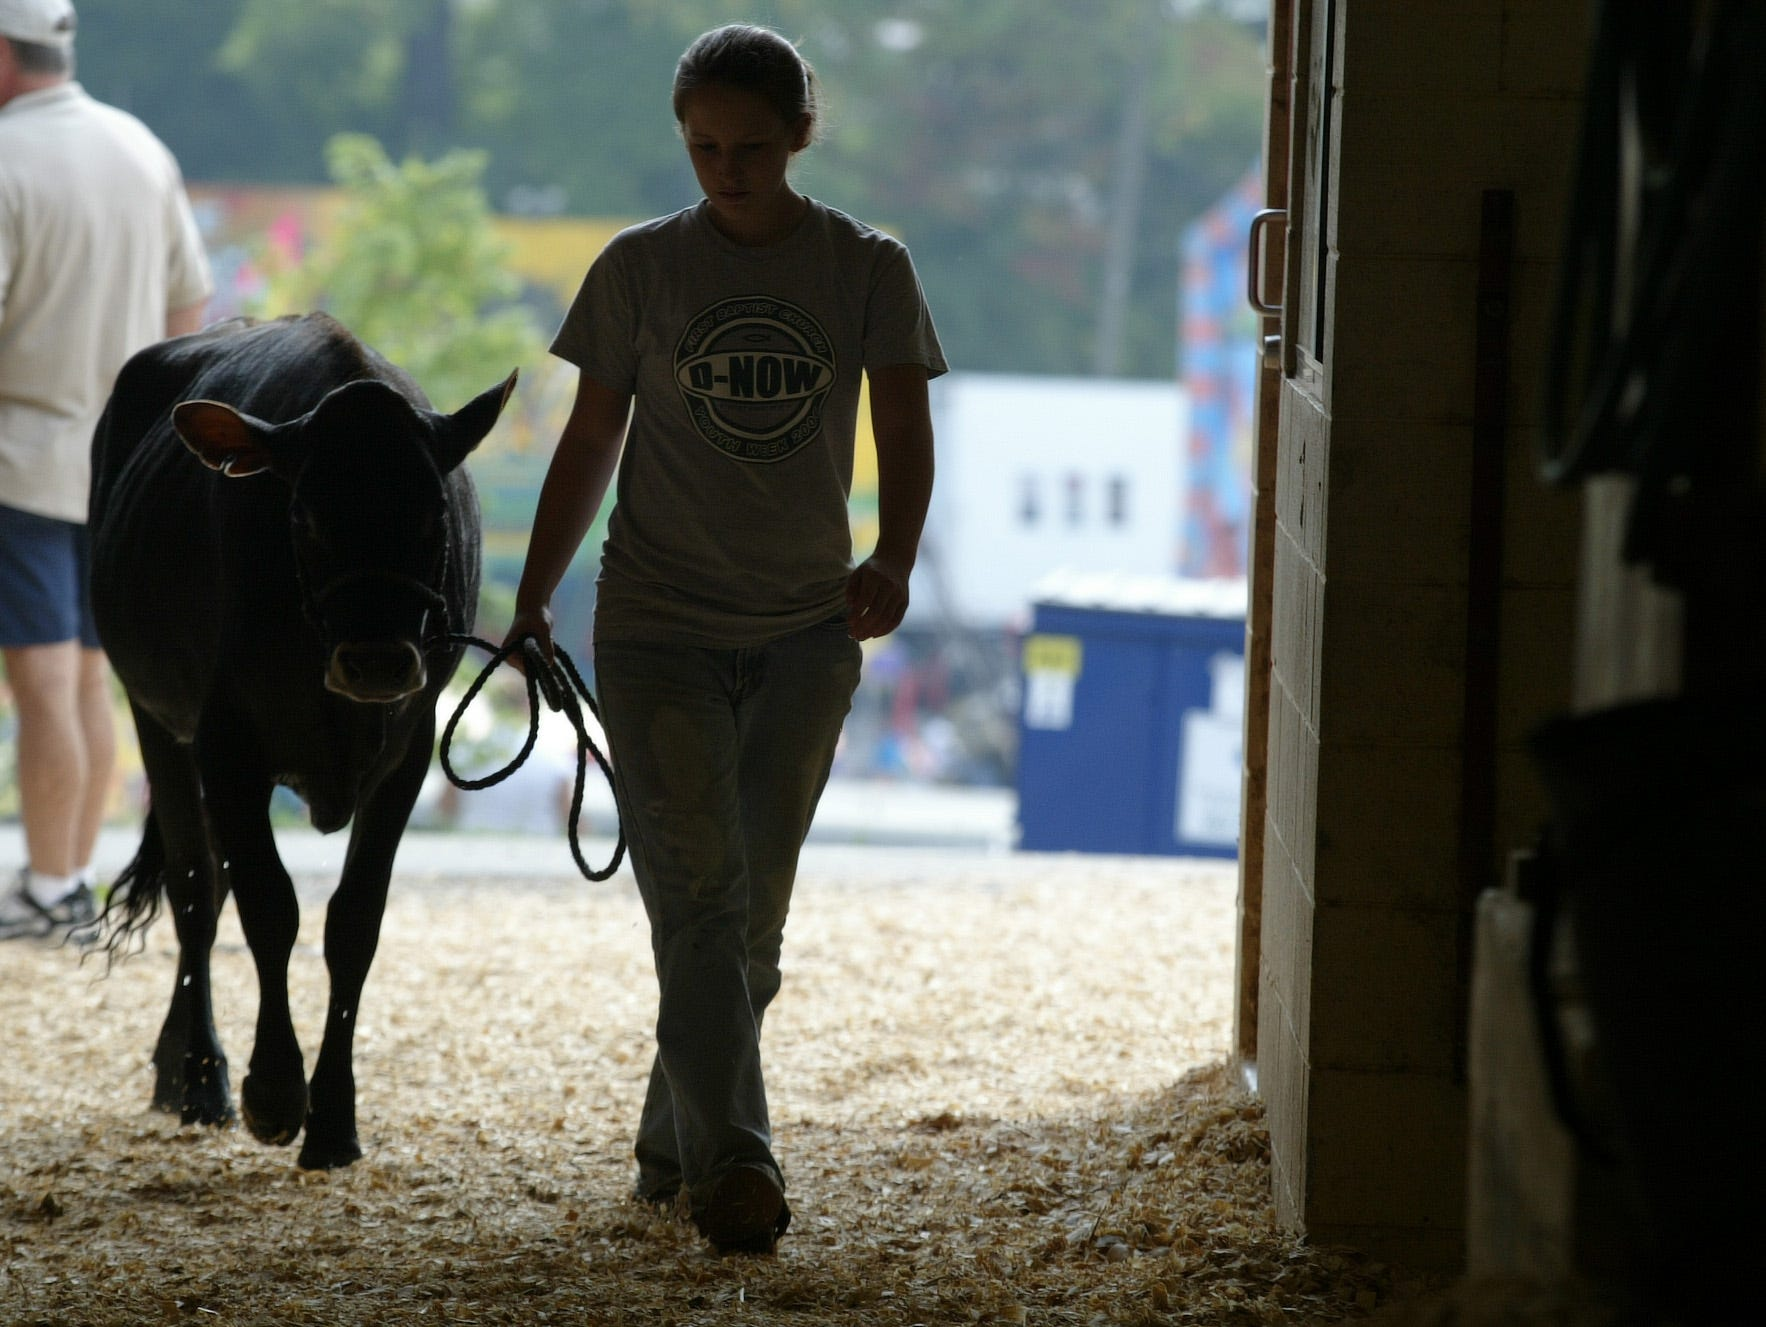 Rebecca Burkhart, 15,  of Greenback leads her Jersey calf back to its stall on Sunday at the Tennessee Valley Fair in 2006. Burkhart was competing in the livestock show.